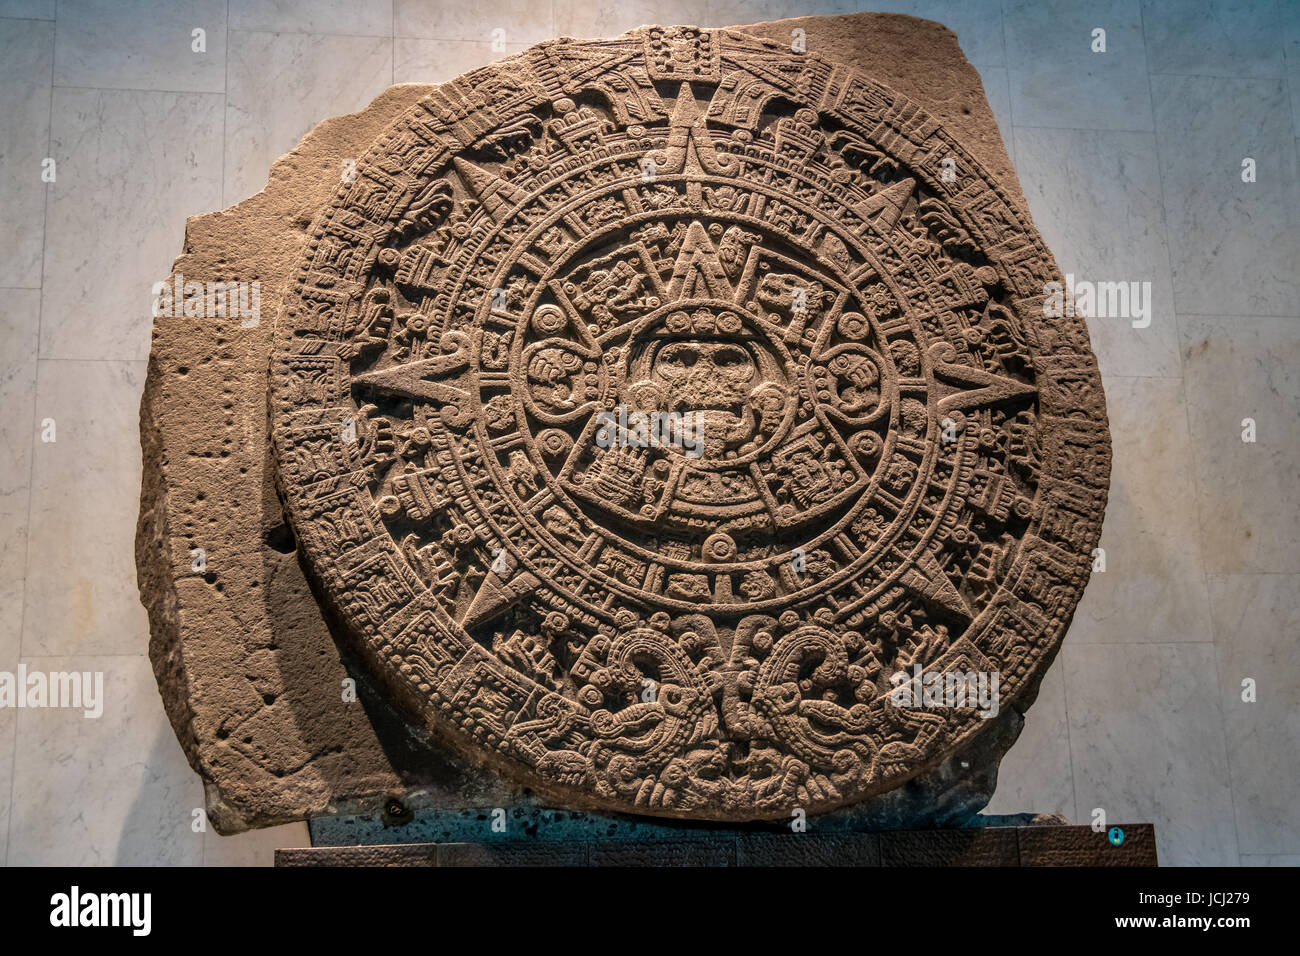 The Aztec Sunstone at The National Museum of Anthropology (Museo Nacional de Antropologia, MNA) - Mexico City, Mexico - Stock Image